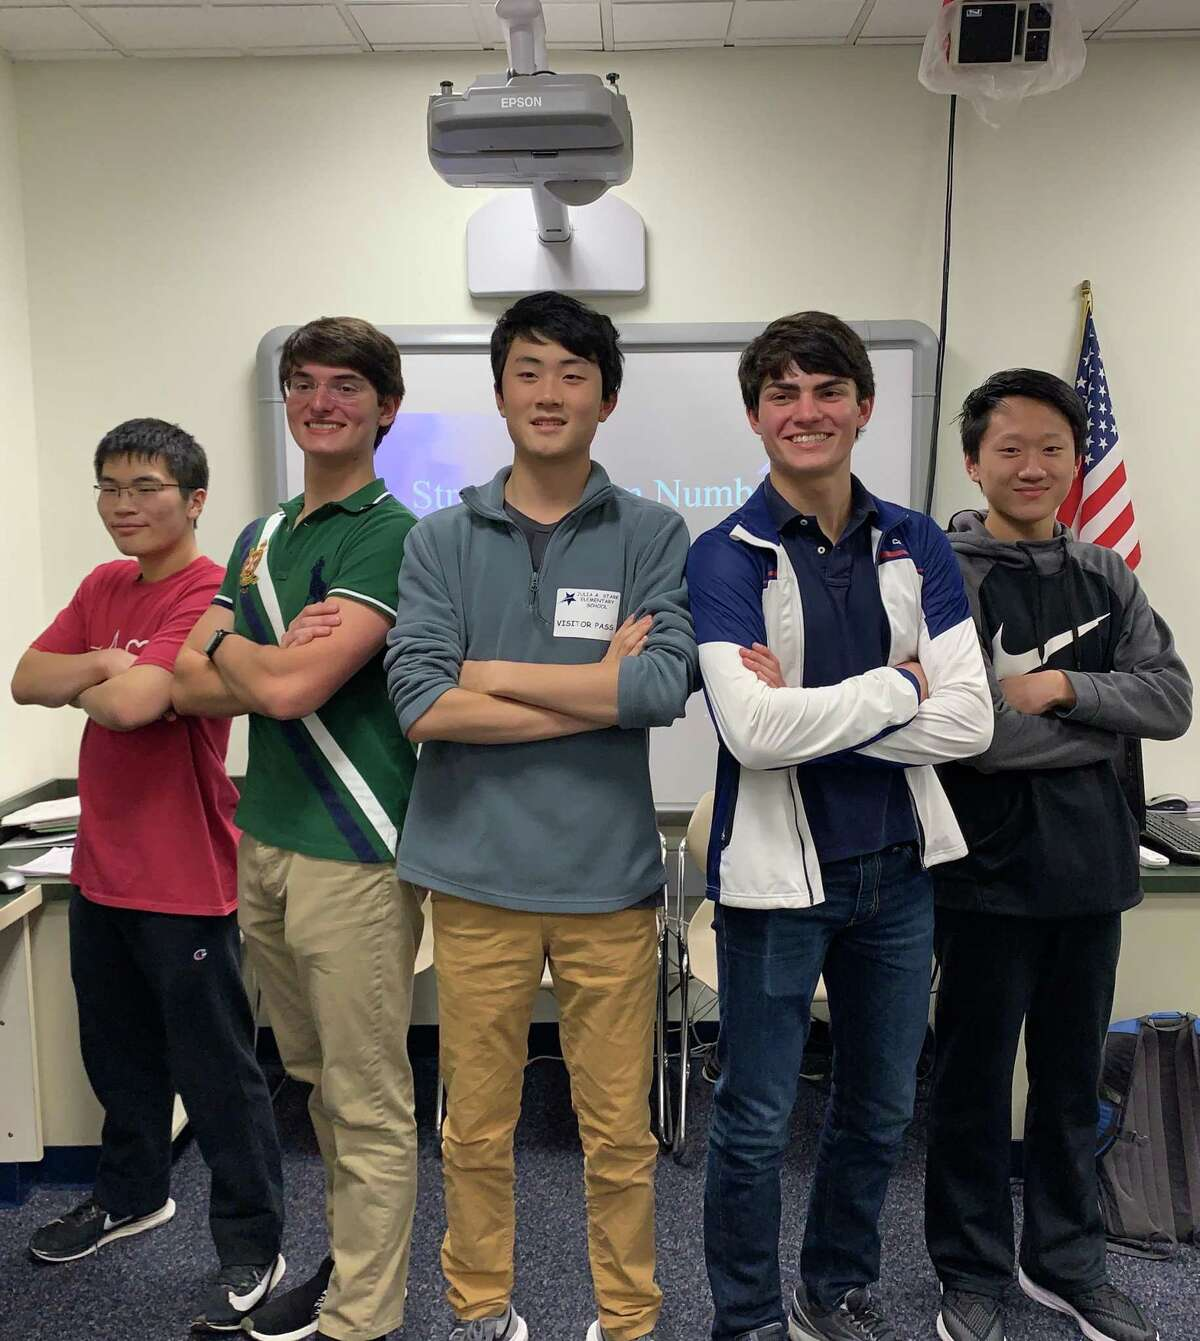 Marcus Feng, left, Jonathan Strong, Ming Wu, James Strong, Andrew Qin. Not pictured, Luke Smith. Darien High School seniors James Strong (president and co-founder) and Ming Wu (co-founder) have worked to bring fourth and fifth graders a program that pushes their minds while exciting them about the field of mathematics.